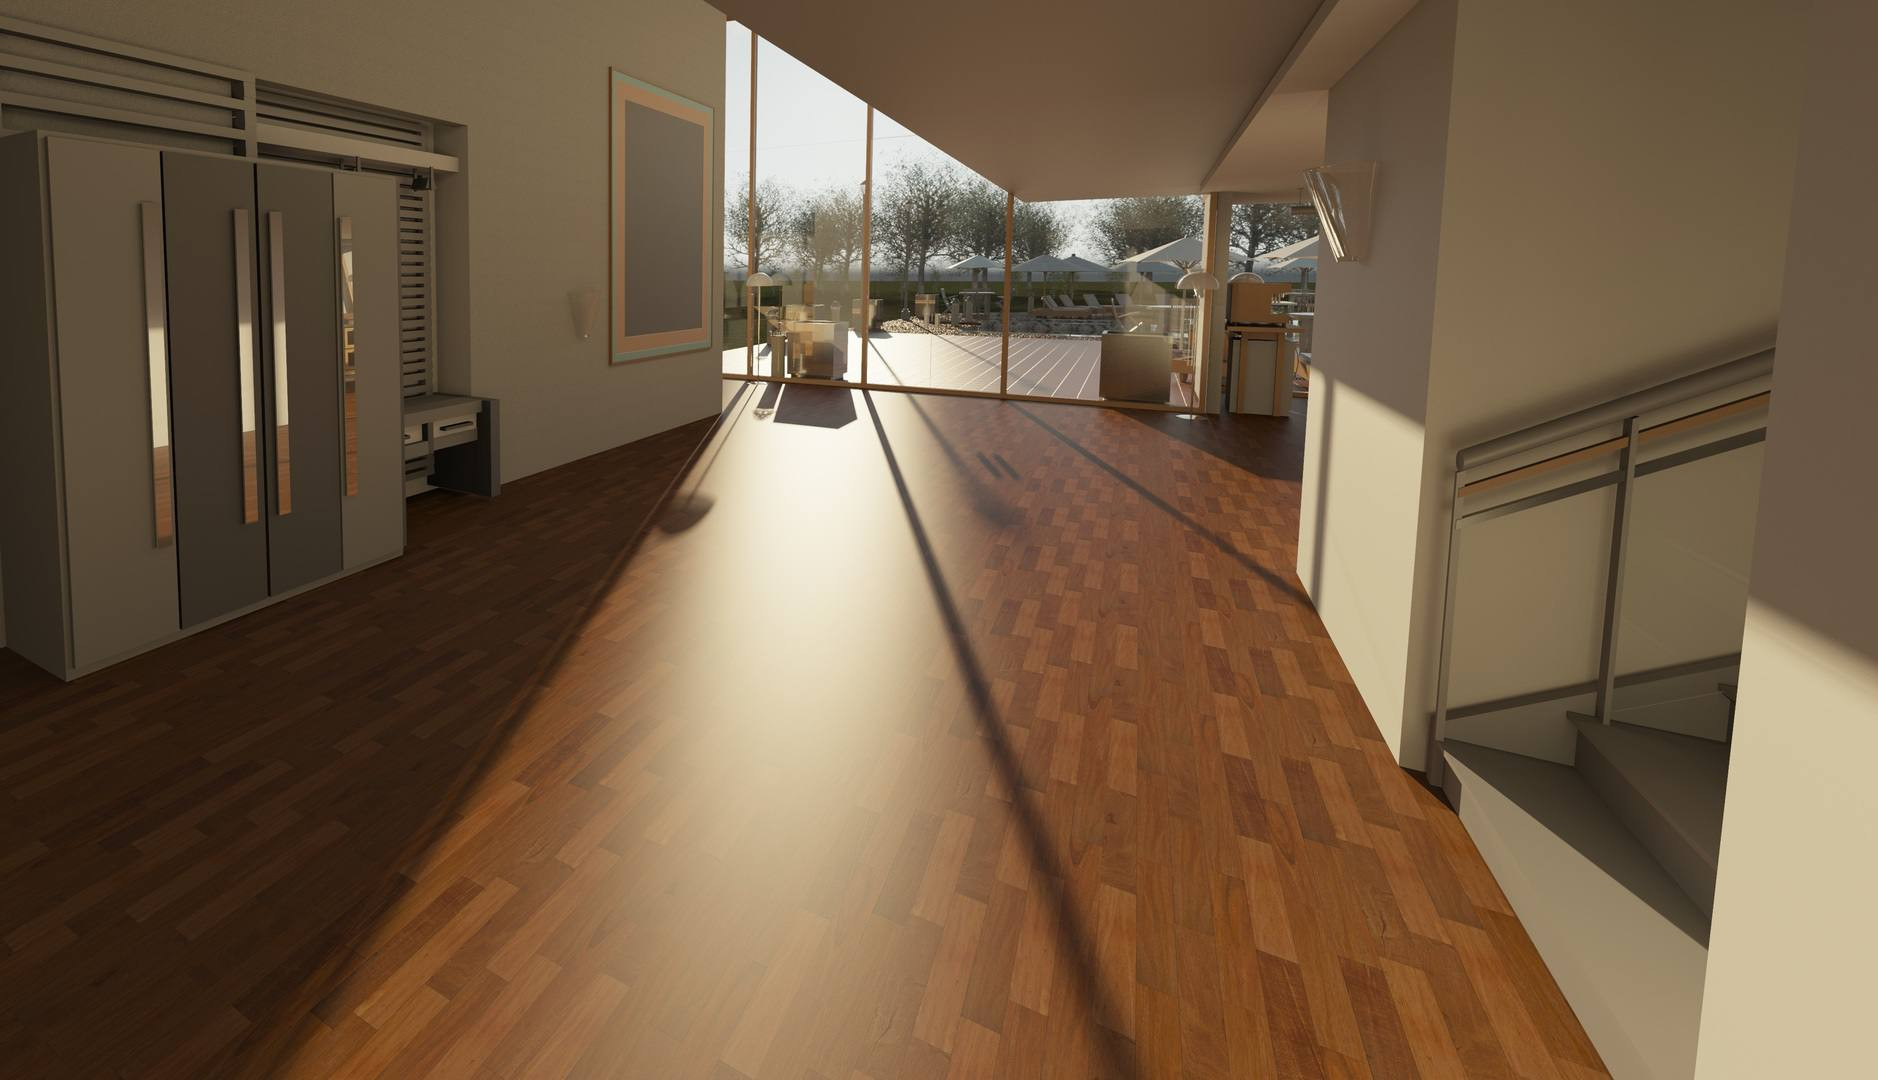 hardwood flooring on concrete floor of common flooring types currently used in renovation and building inside architecture wood house floor interior window 917178 pxhere com 5ba27a2cc9e77c00503b27b9